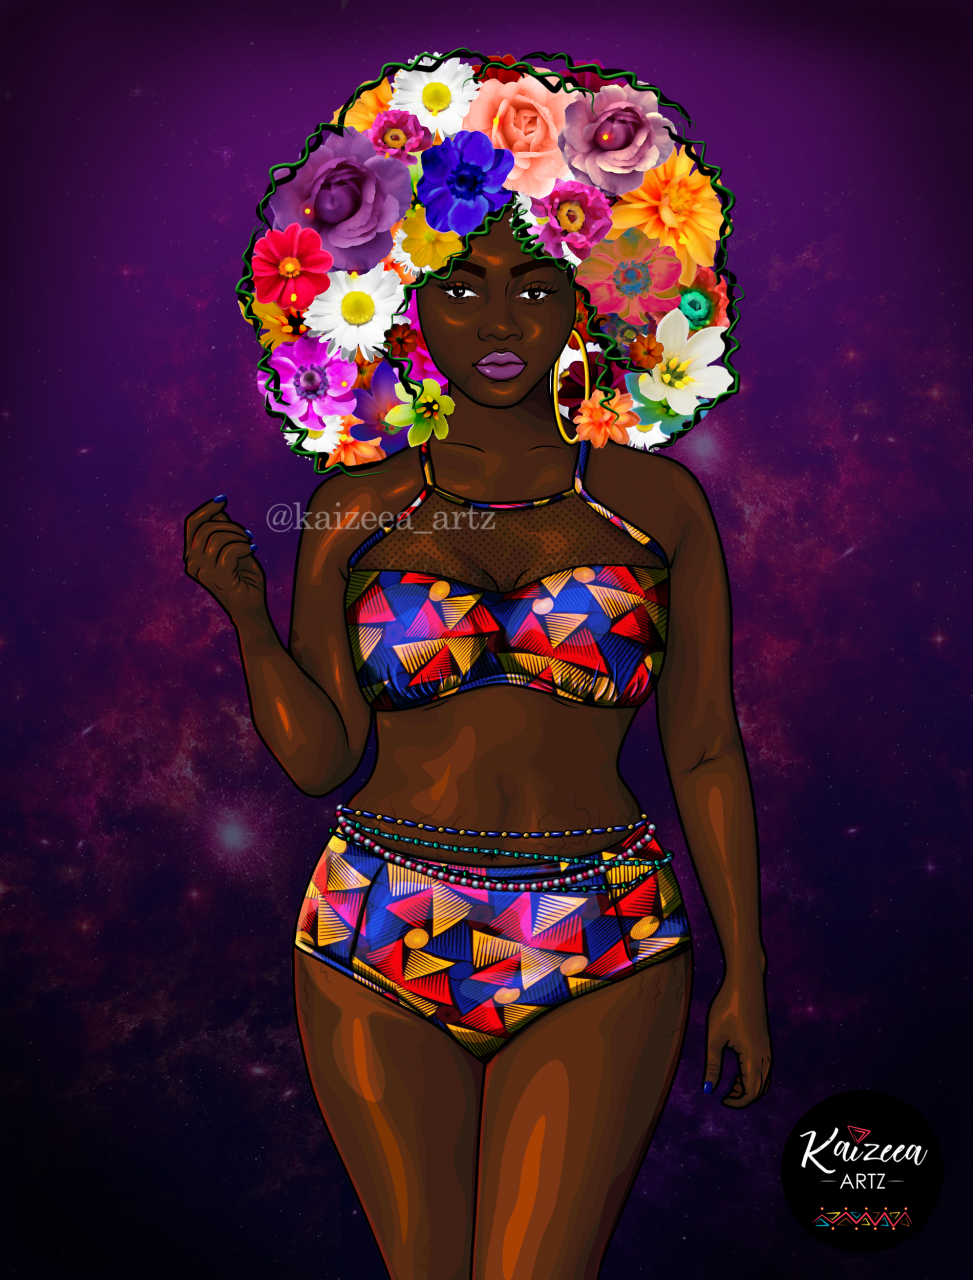 kaizeea artz art artist artiste creator mauritius ile maurice blackart african art afro african digital art cartoon art realistic art realisme curvy girl chubby curvy big girl black girl magic afro entrepreneur femme flower art wax print bikini swimwear art waist beads art waistbeadscartoon